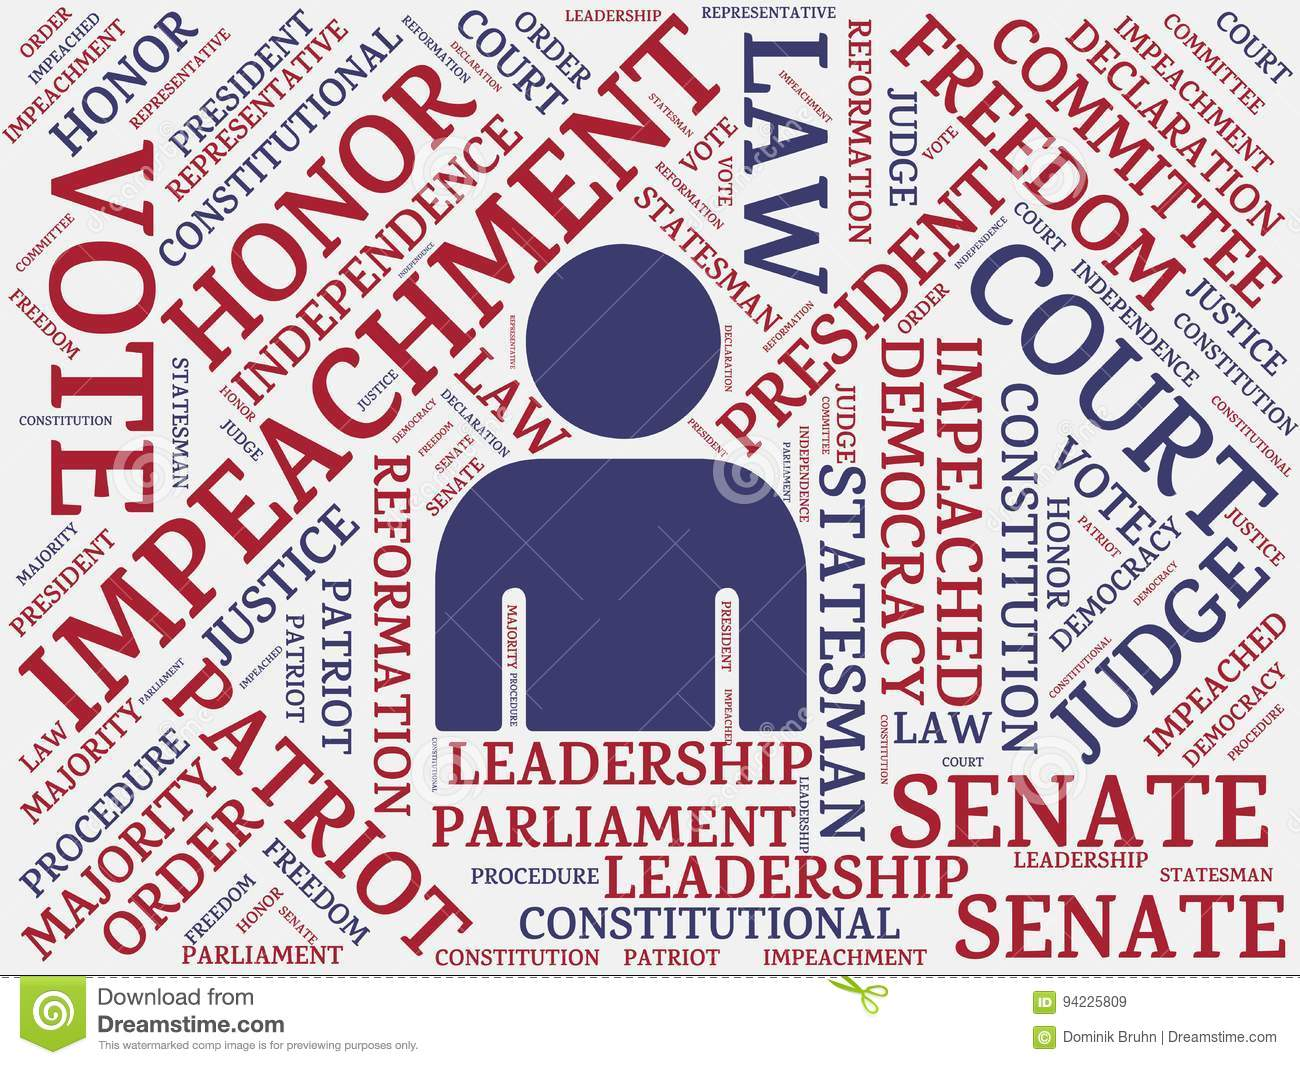 Impeachment Image With Wordsociated With The Topic Impeachment Word Cloud Cube Letter Image Il Ration